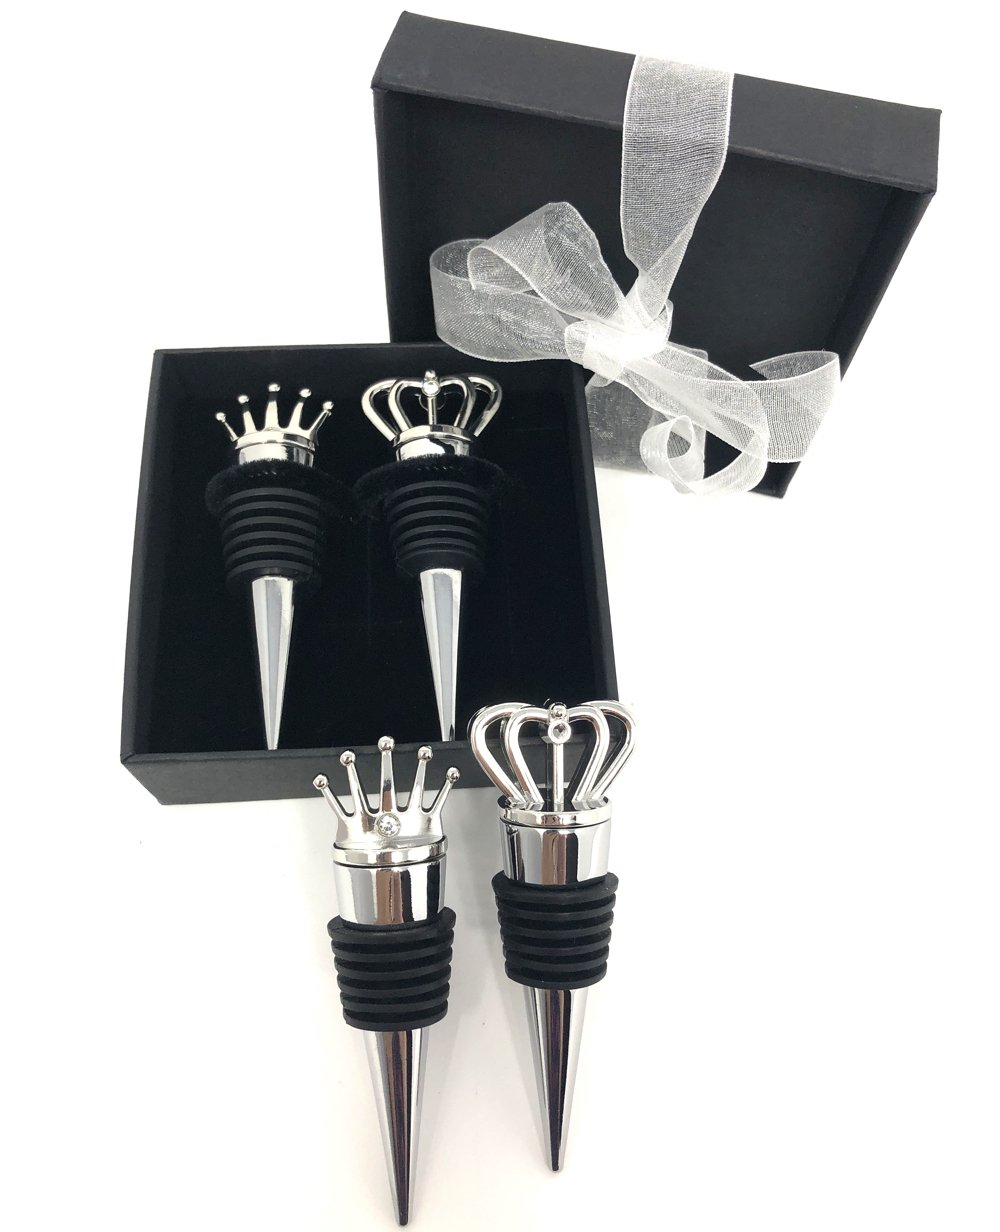 King and Queen wine stopper gift set with gift box and organza ribbon included excellent for wedding favors, birthday, anniversary gift, bridesmaids gifts or home use